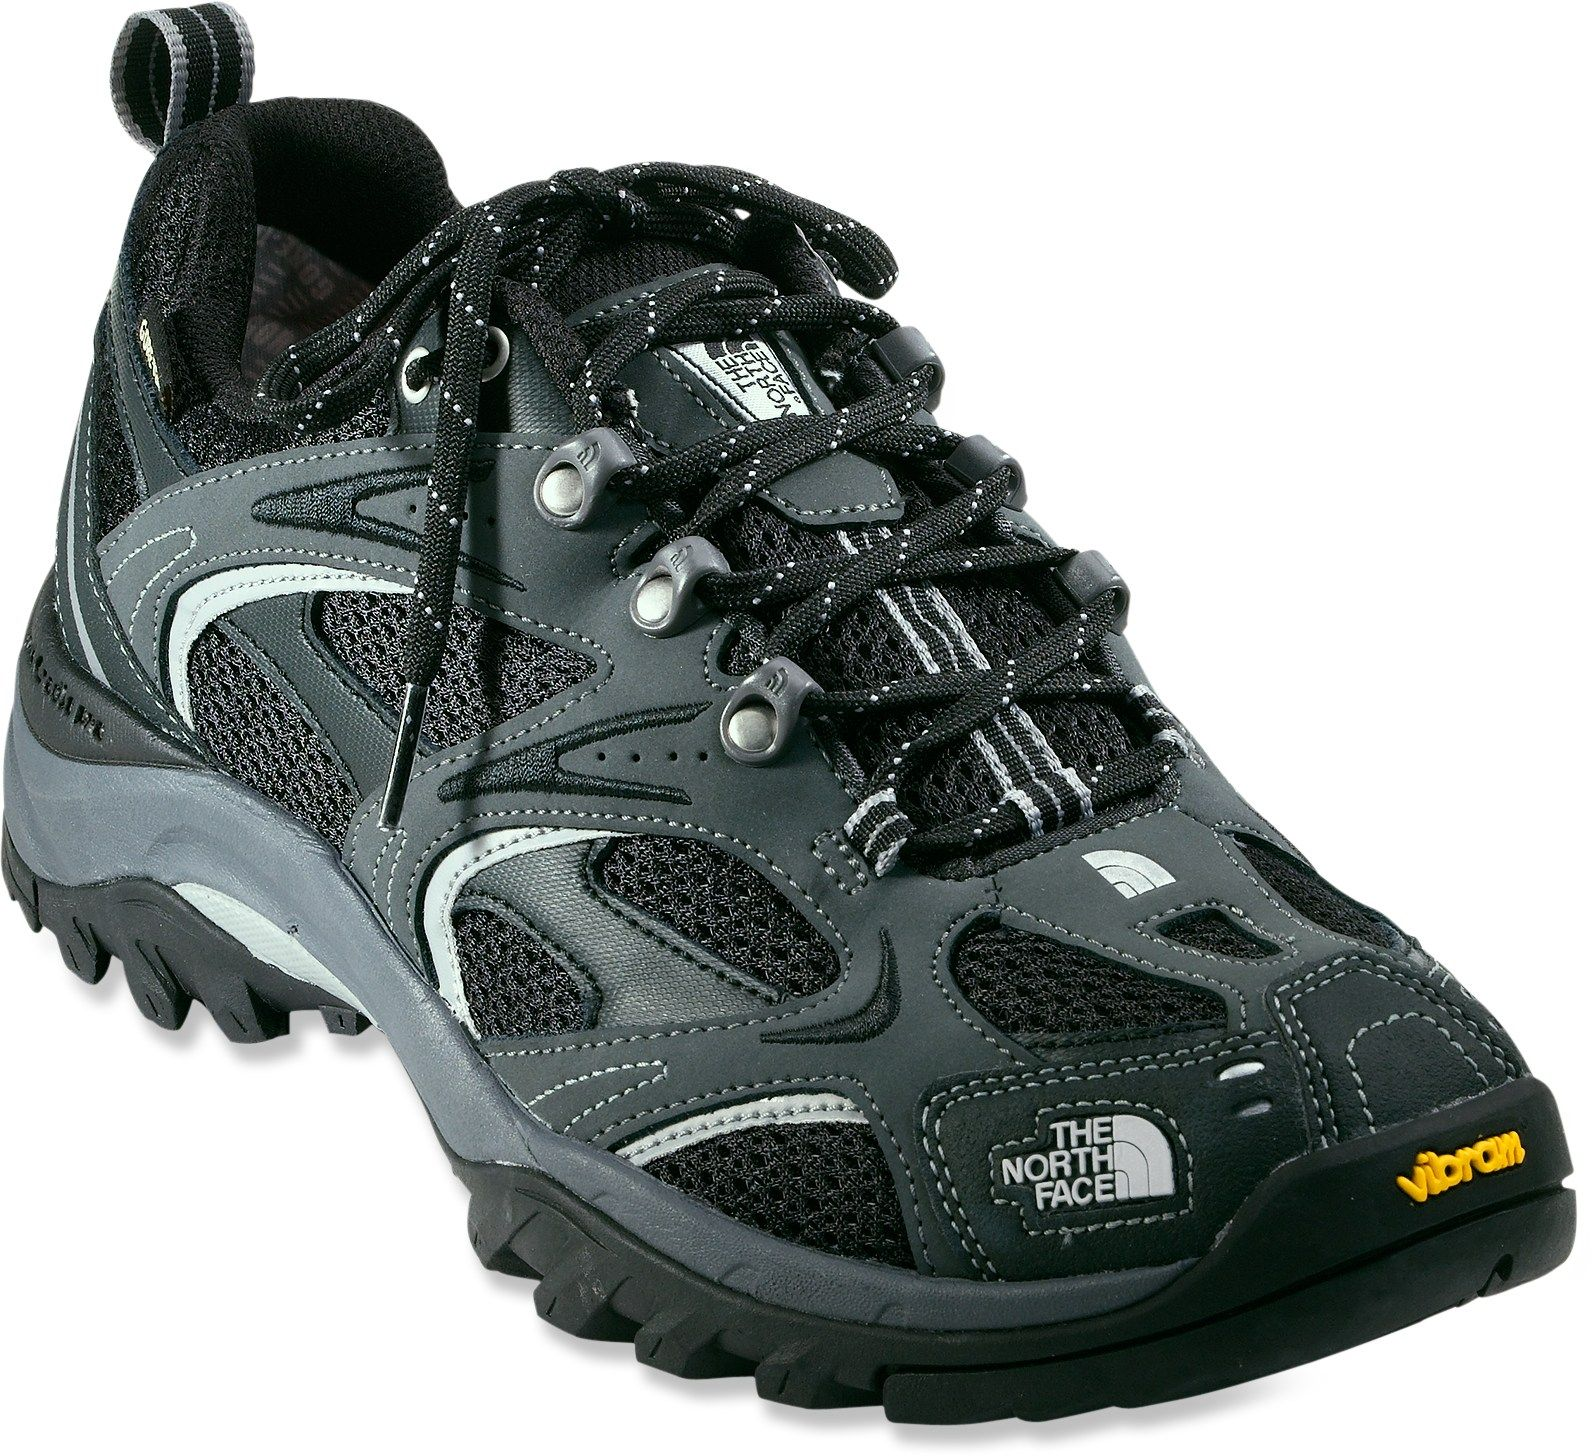 buy popular aa53a 0db44 The North Face Hedgehog III GTX XCR Hiking Shoes - Mens